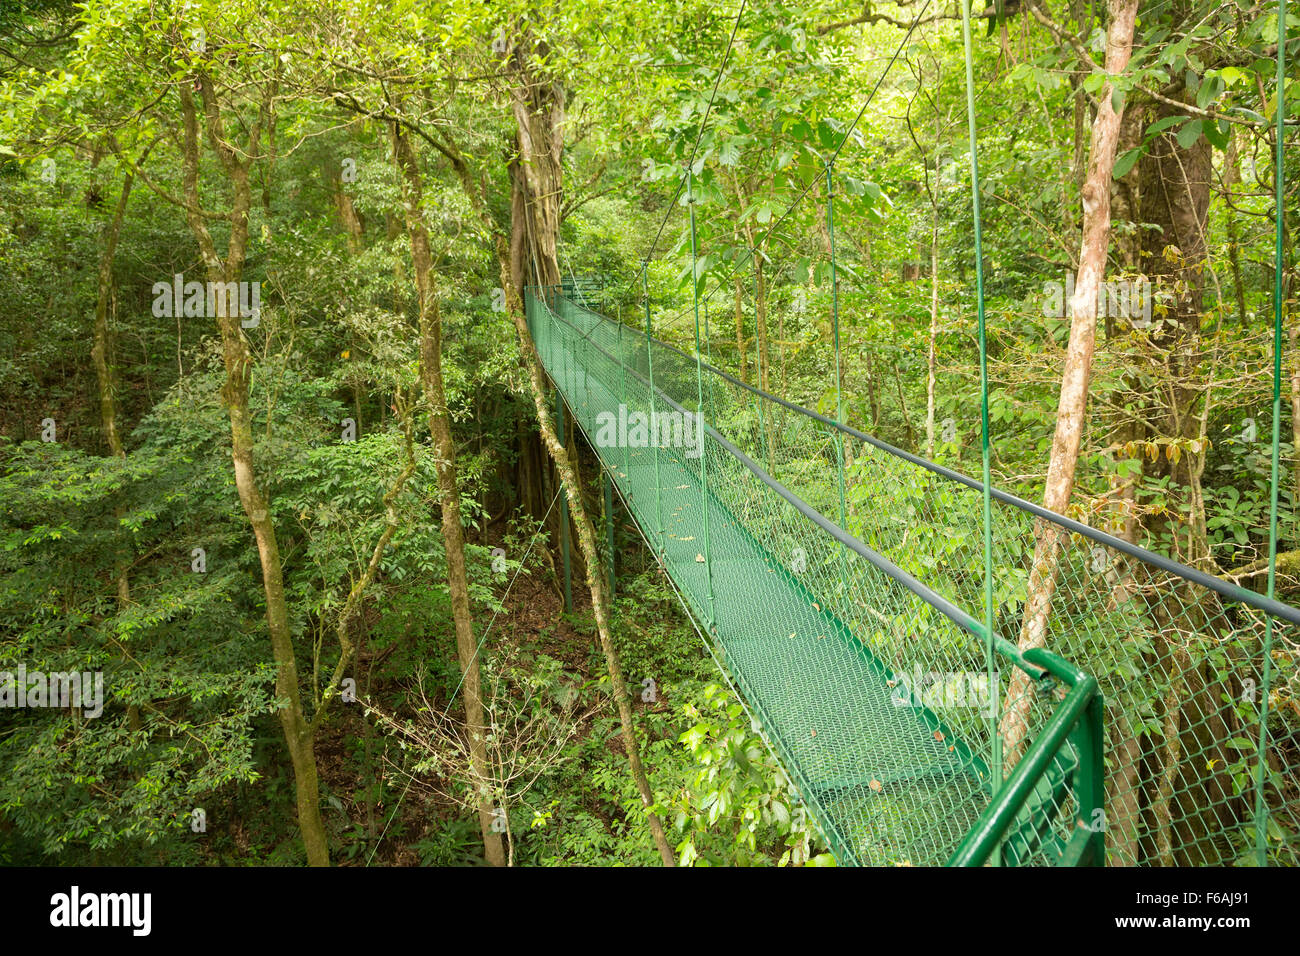 Pont suspendu à la forêt naturelle, au Costa Rica Photo Stock